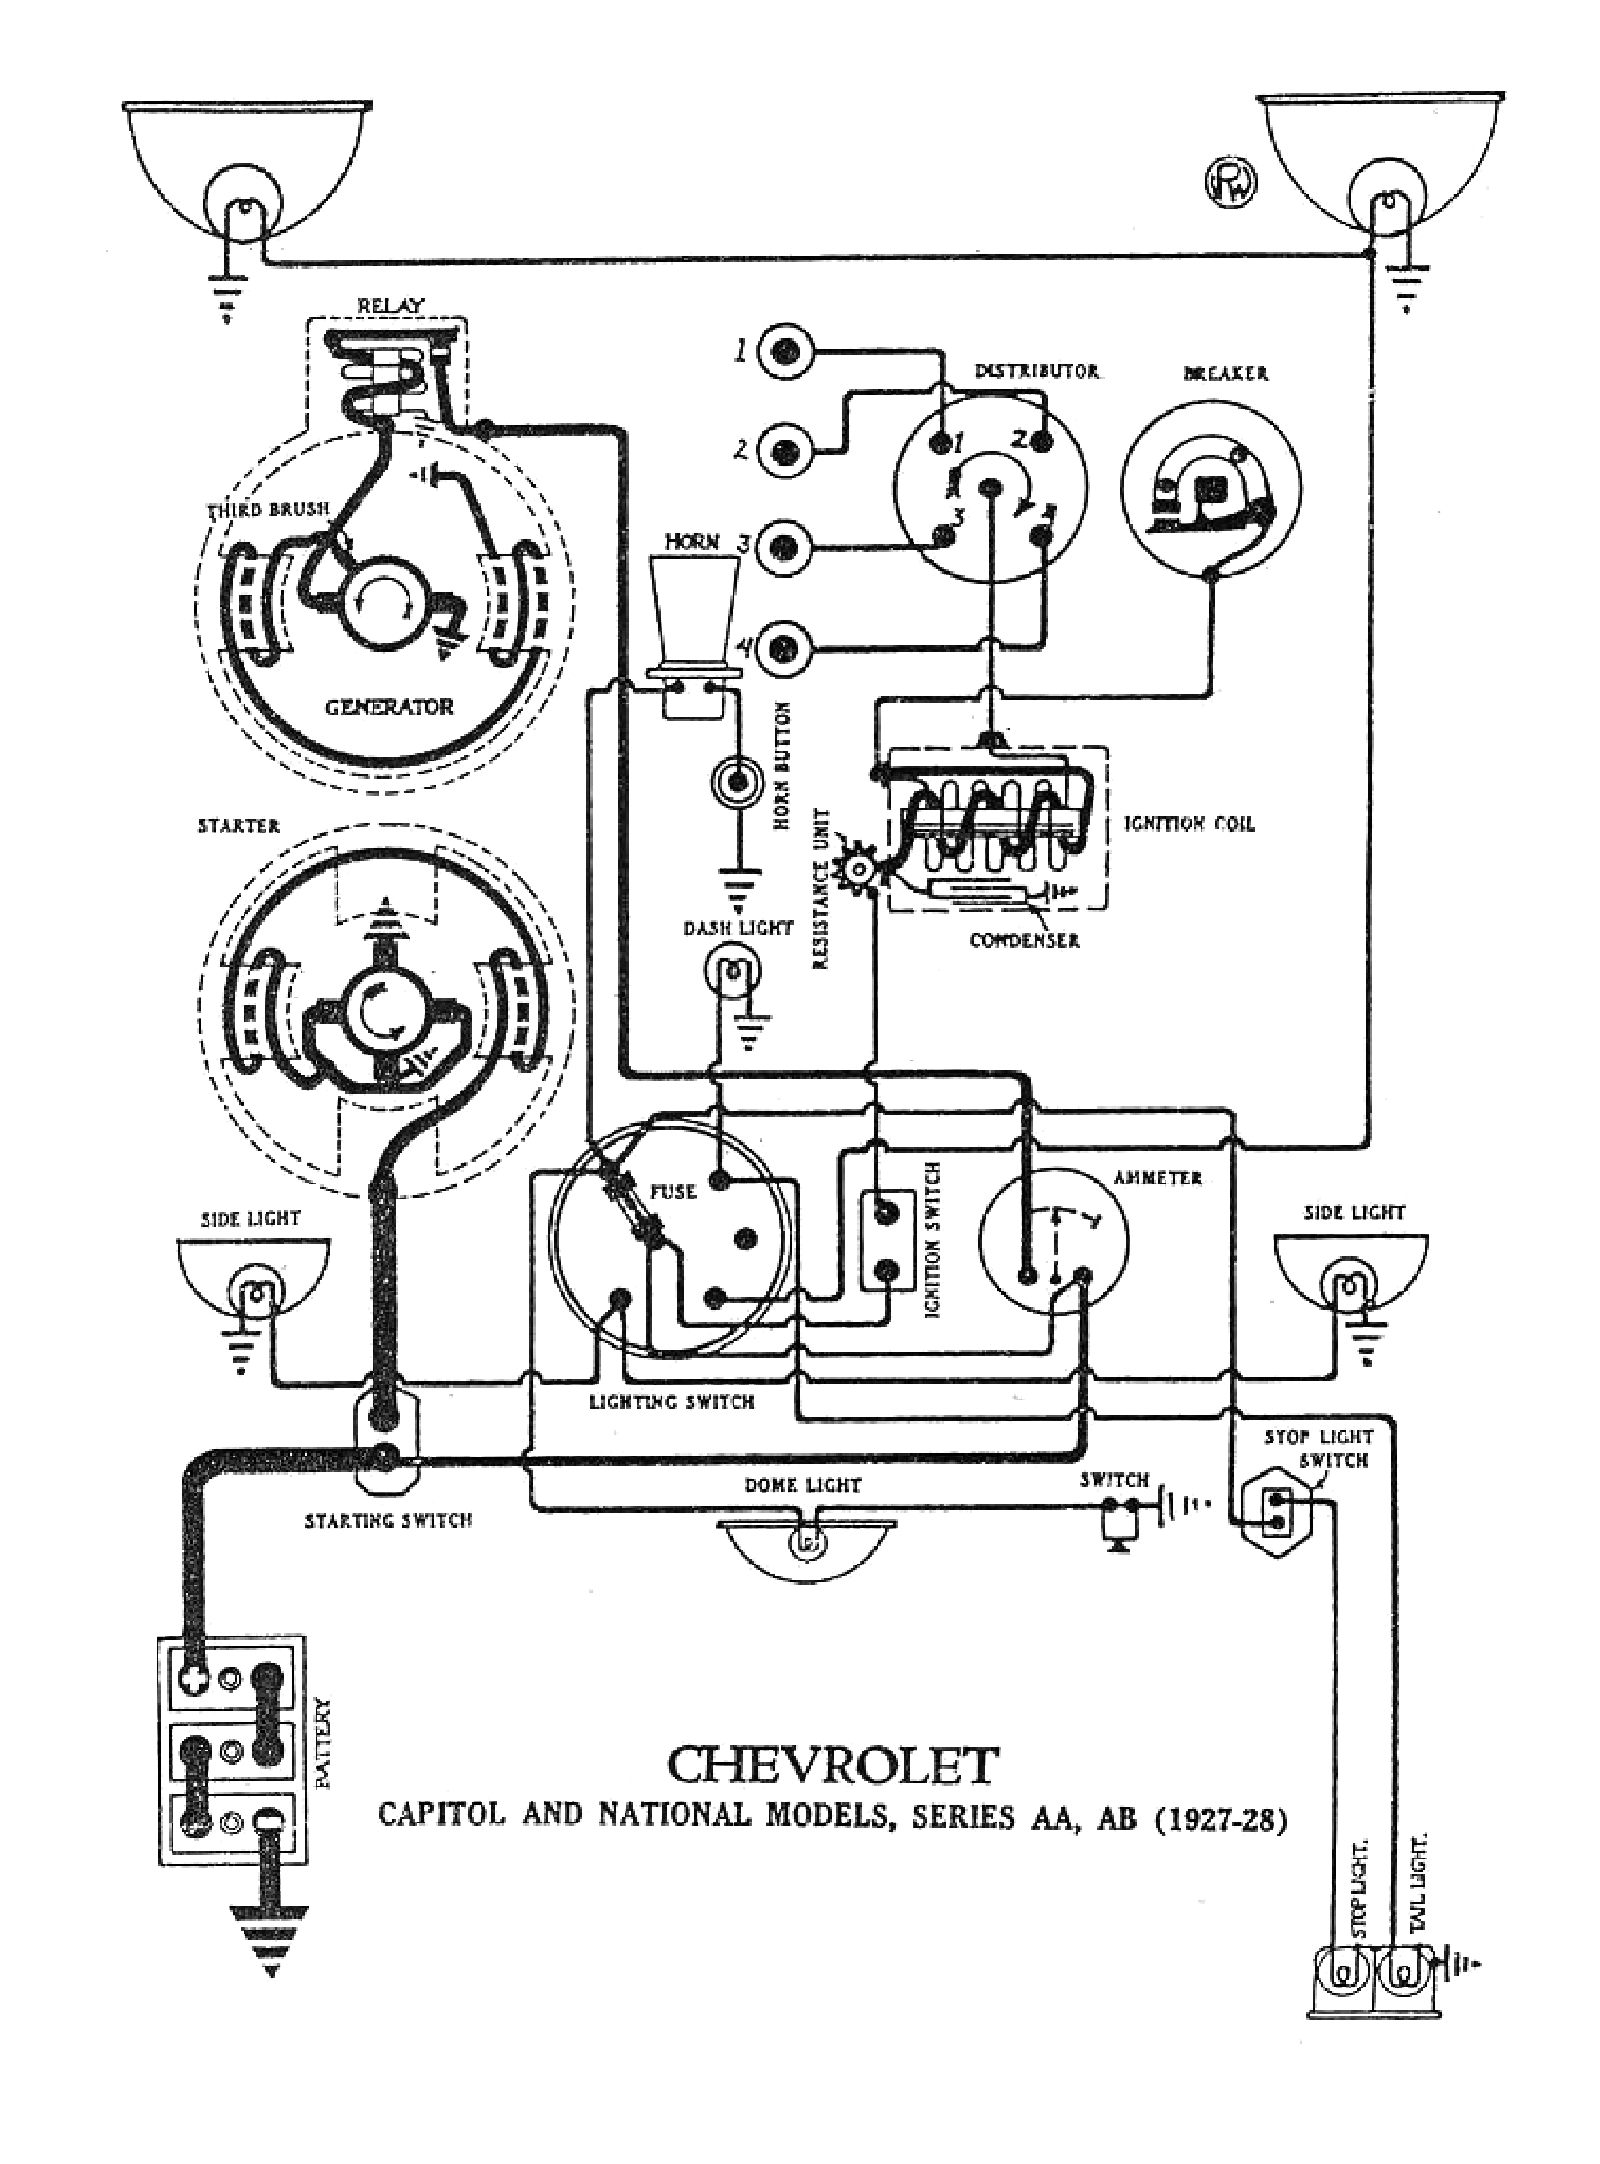 2728wiring chevy wiring diagrams 1946 ford truck wiring diagram at eliteediting.co